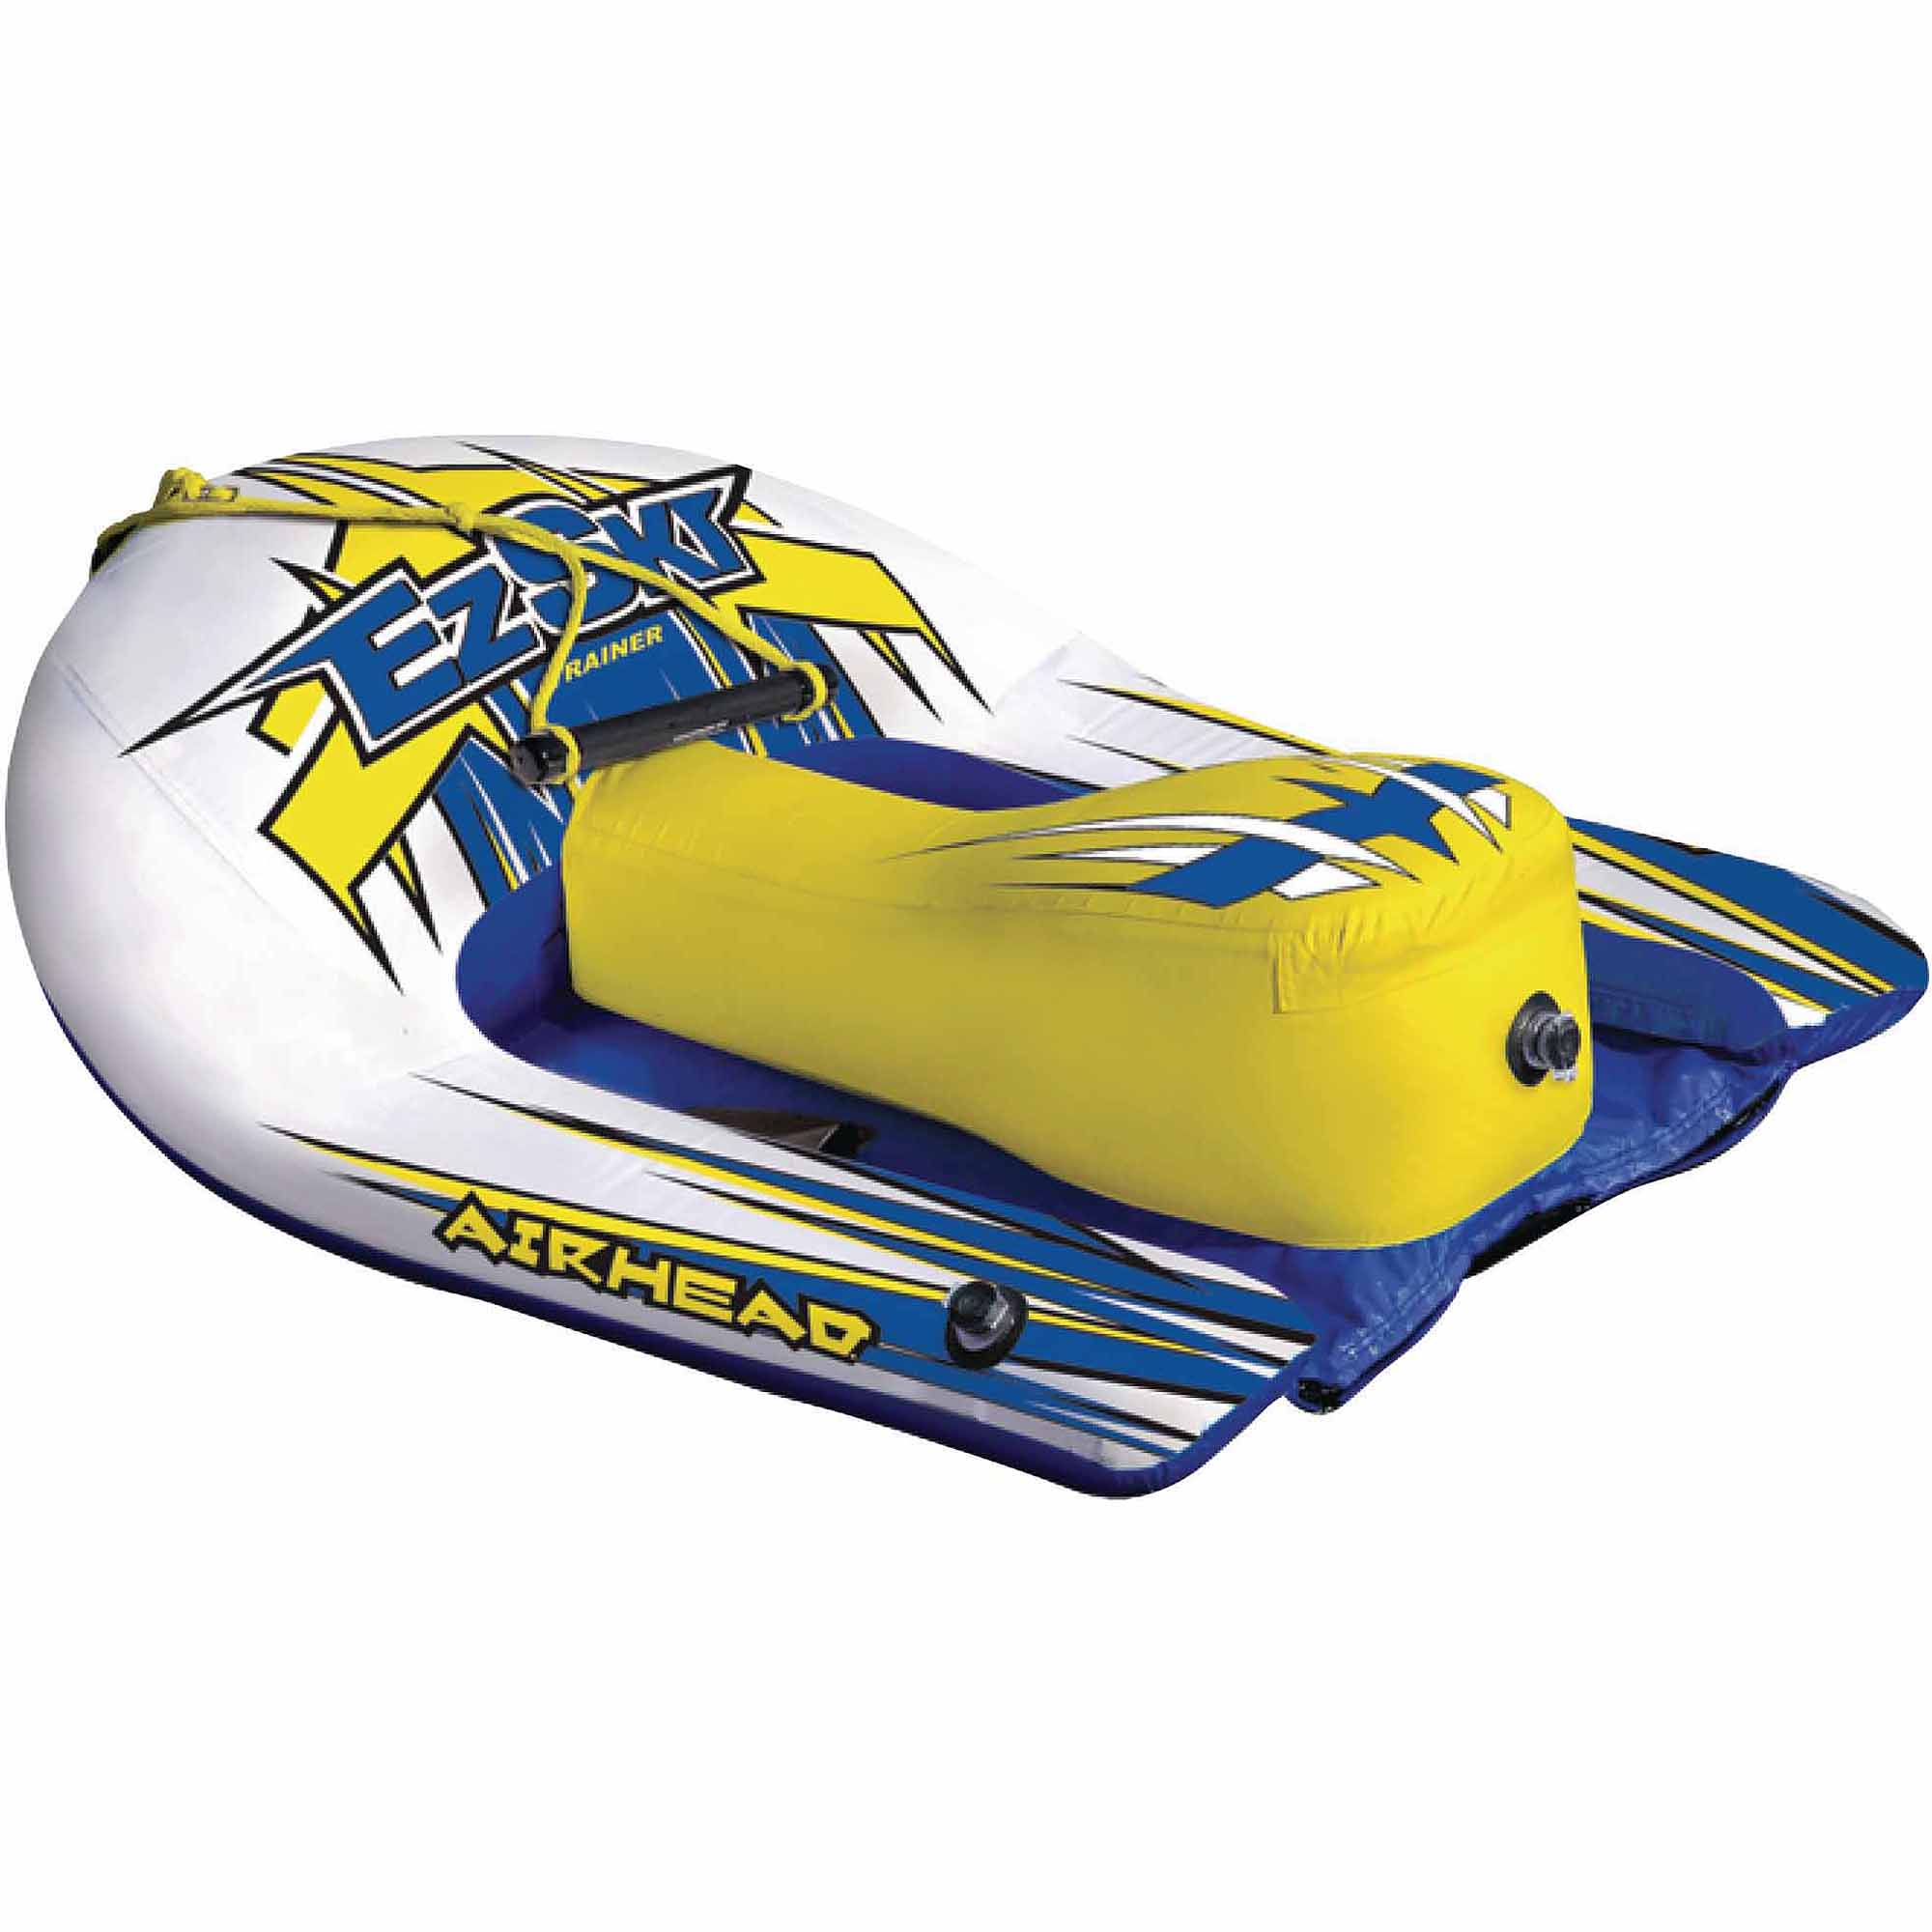 Airhead EZ Ski Inflatable Single Rider Towable Water Ski Hybrid by Kwik Tek